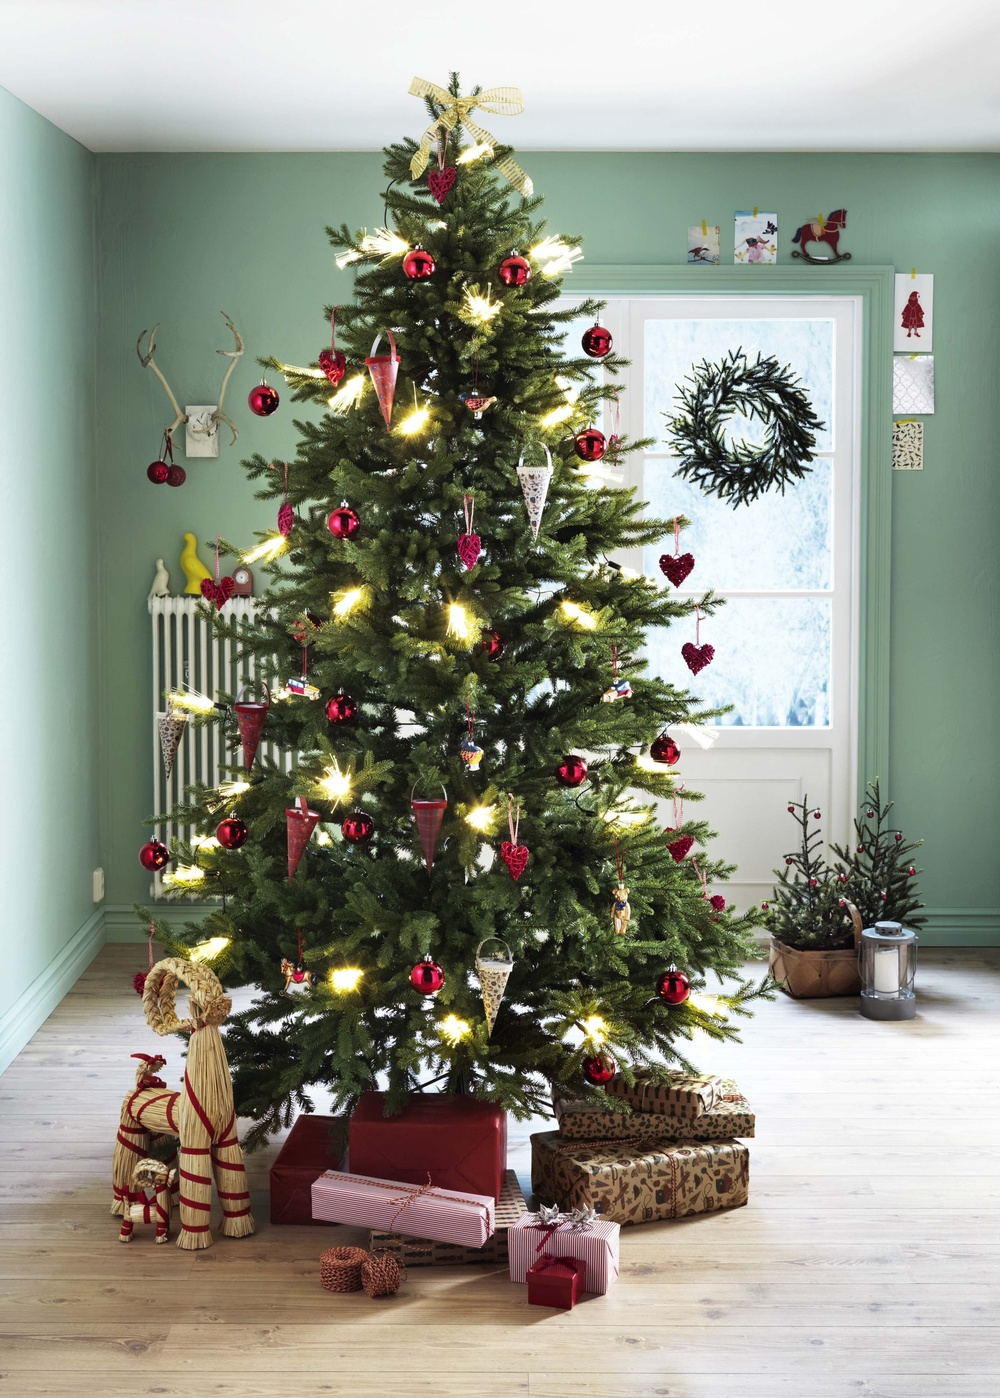 ikea belfast will be selling real christmas trees for 25. Black Bedroom Furniture Sets. Home Design Ideas